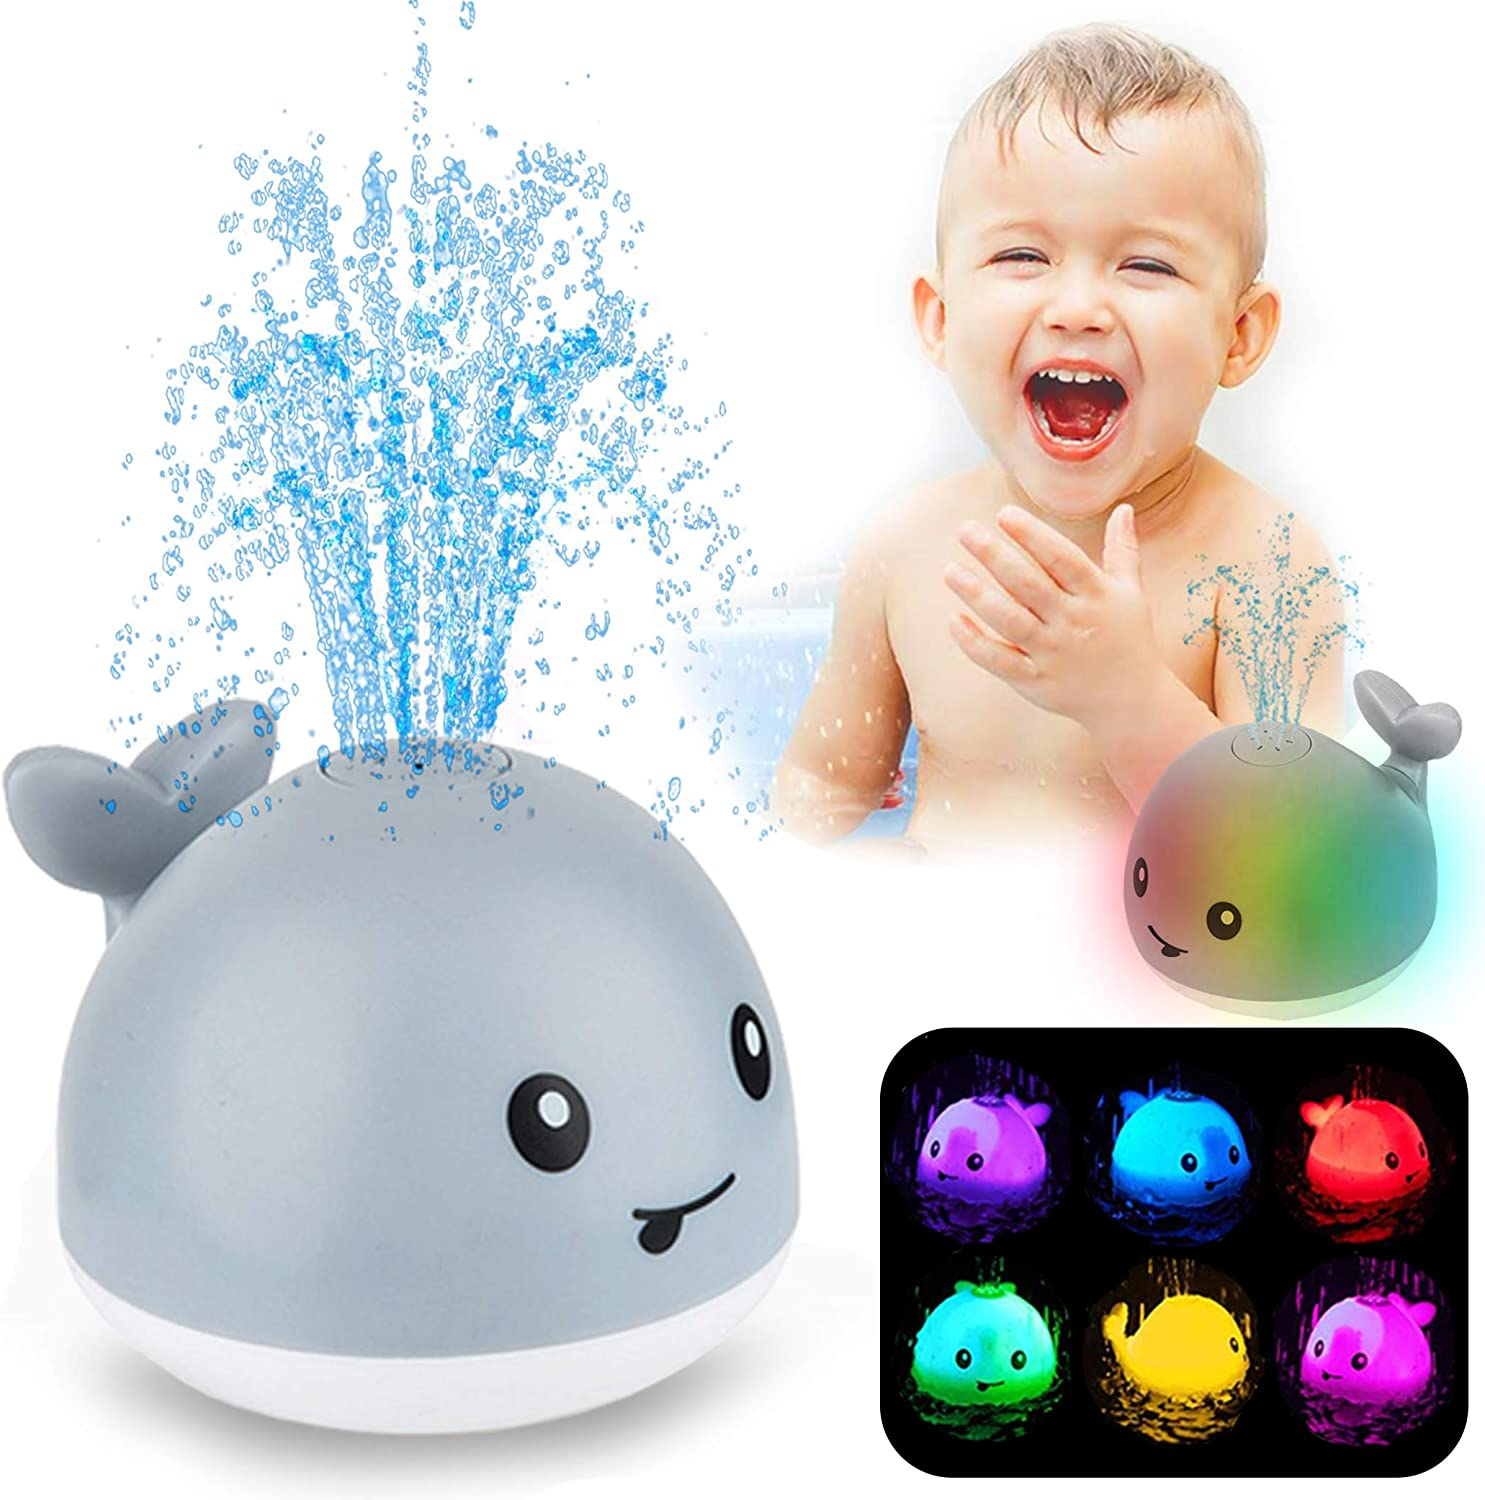 Bath Toy For kids,Whale Auto Water Spray Toy With Seven Kinds Of Flashing Light For Toddlers,Induction Soft light and Water Fountain Shower Toy Ideal Gifts For 1 2 3 4 5 6 Years Old Boys Girls.